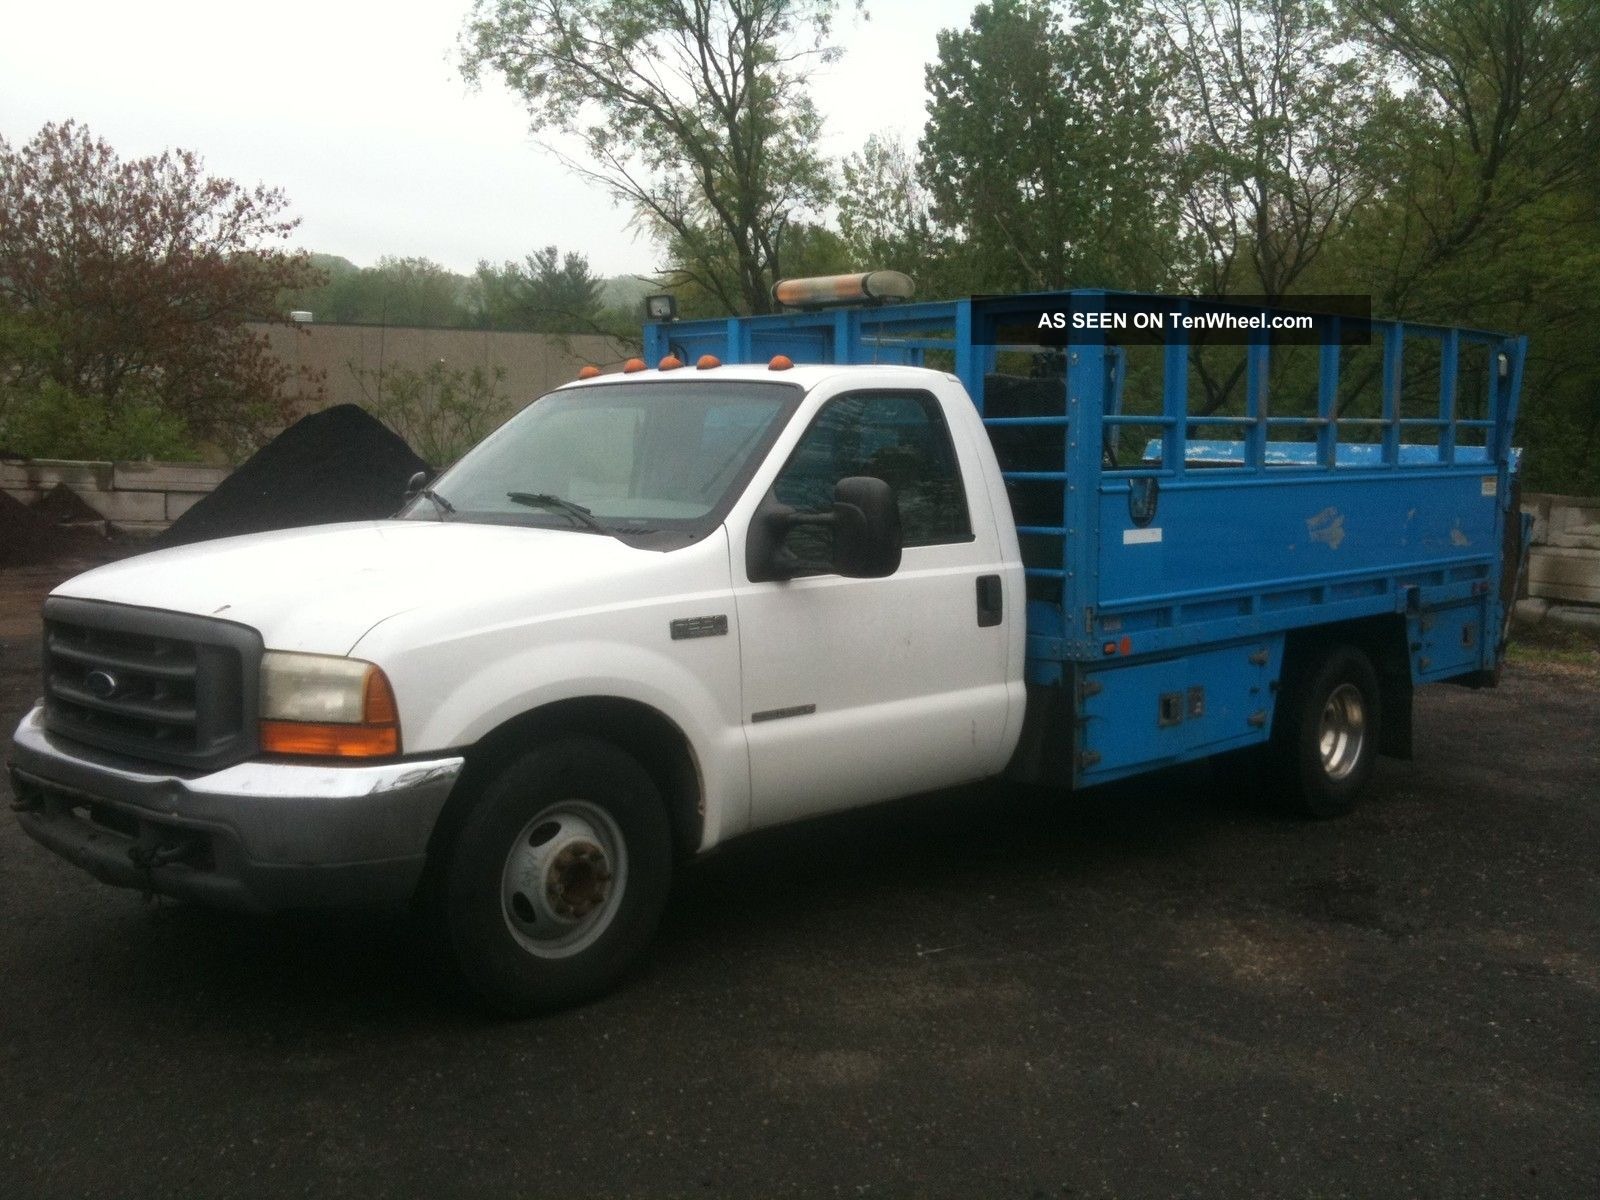 1999 Ford F350 Tire Truck 7.  3 Diesel V8 Duty Tire Truck,  With Compressor F-350 photo